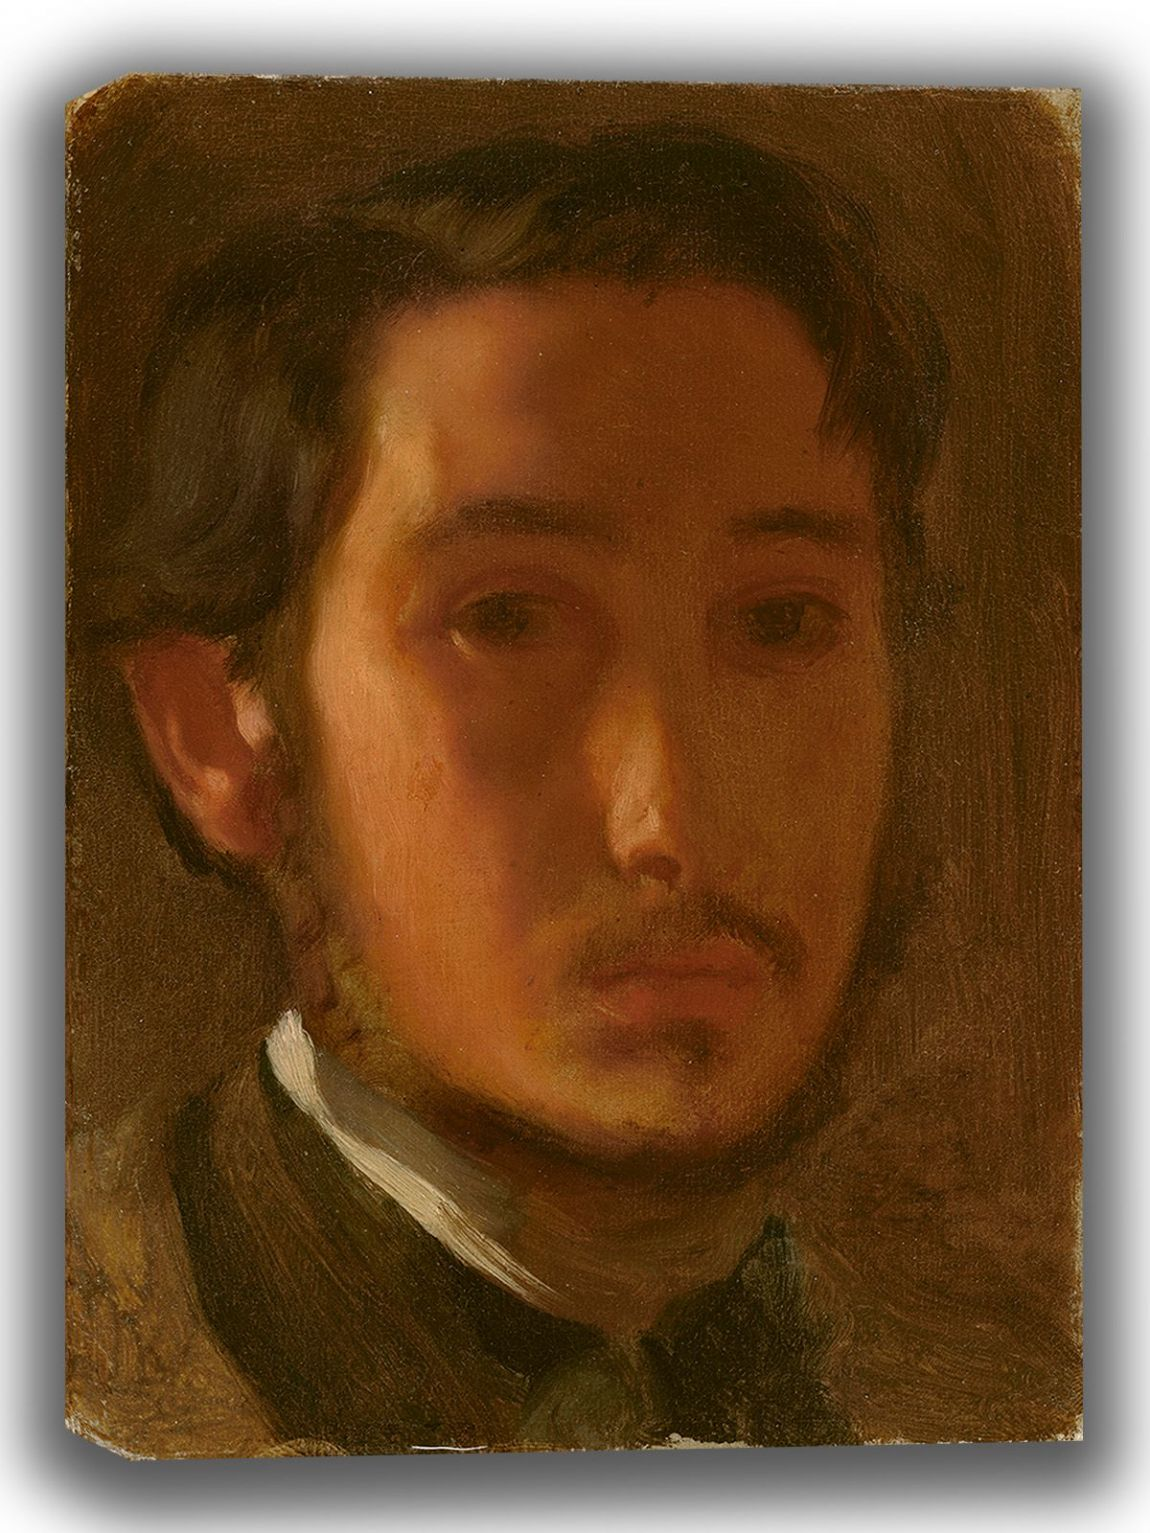 Degas, Edgar: Self-Portrait with White Collar. Fine Art Canvas. Sizes: A4/A3/A2/A1 (003964)